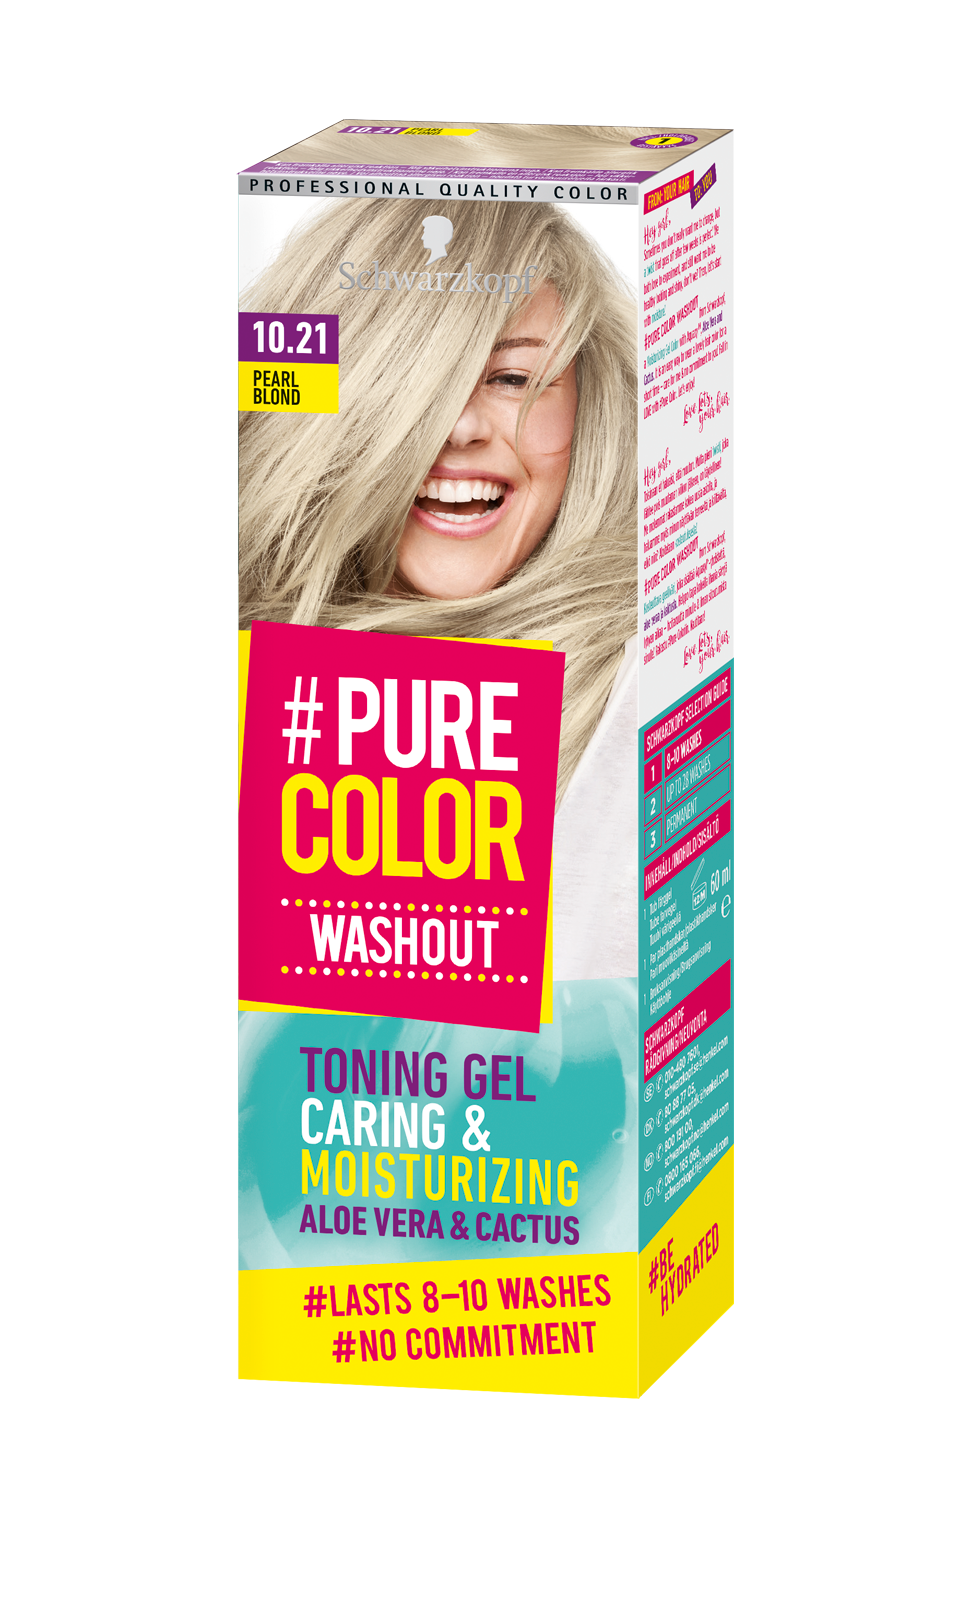 Pure-color-washout-10-21-pearl-blond